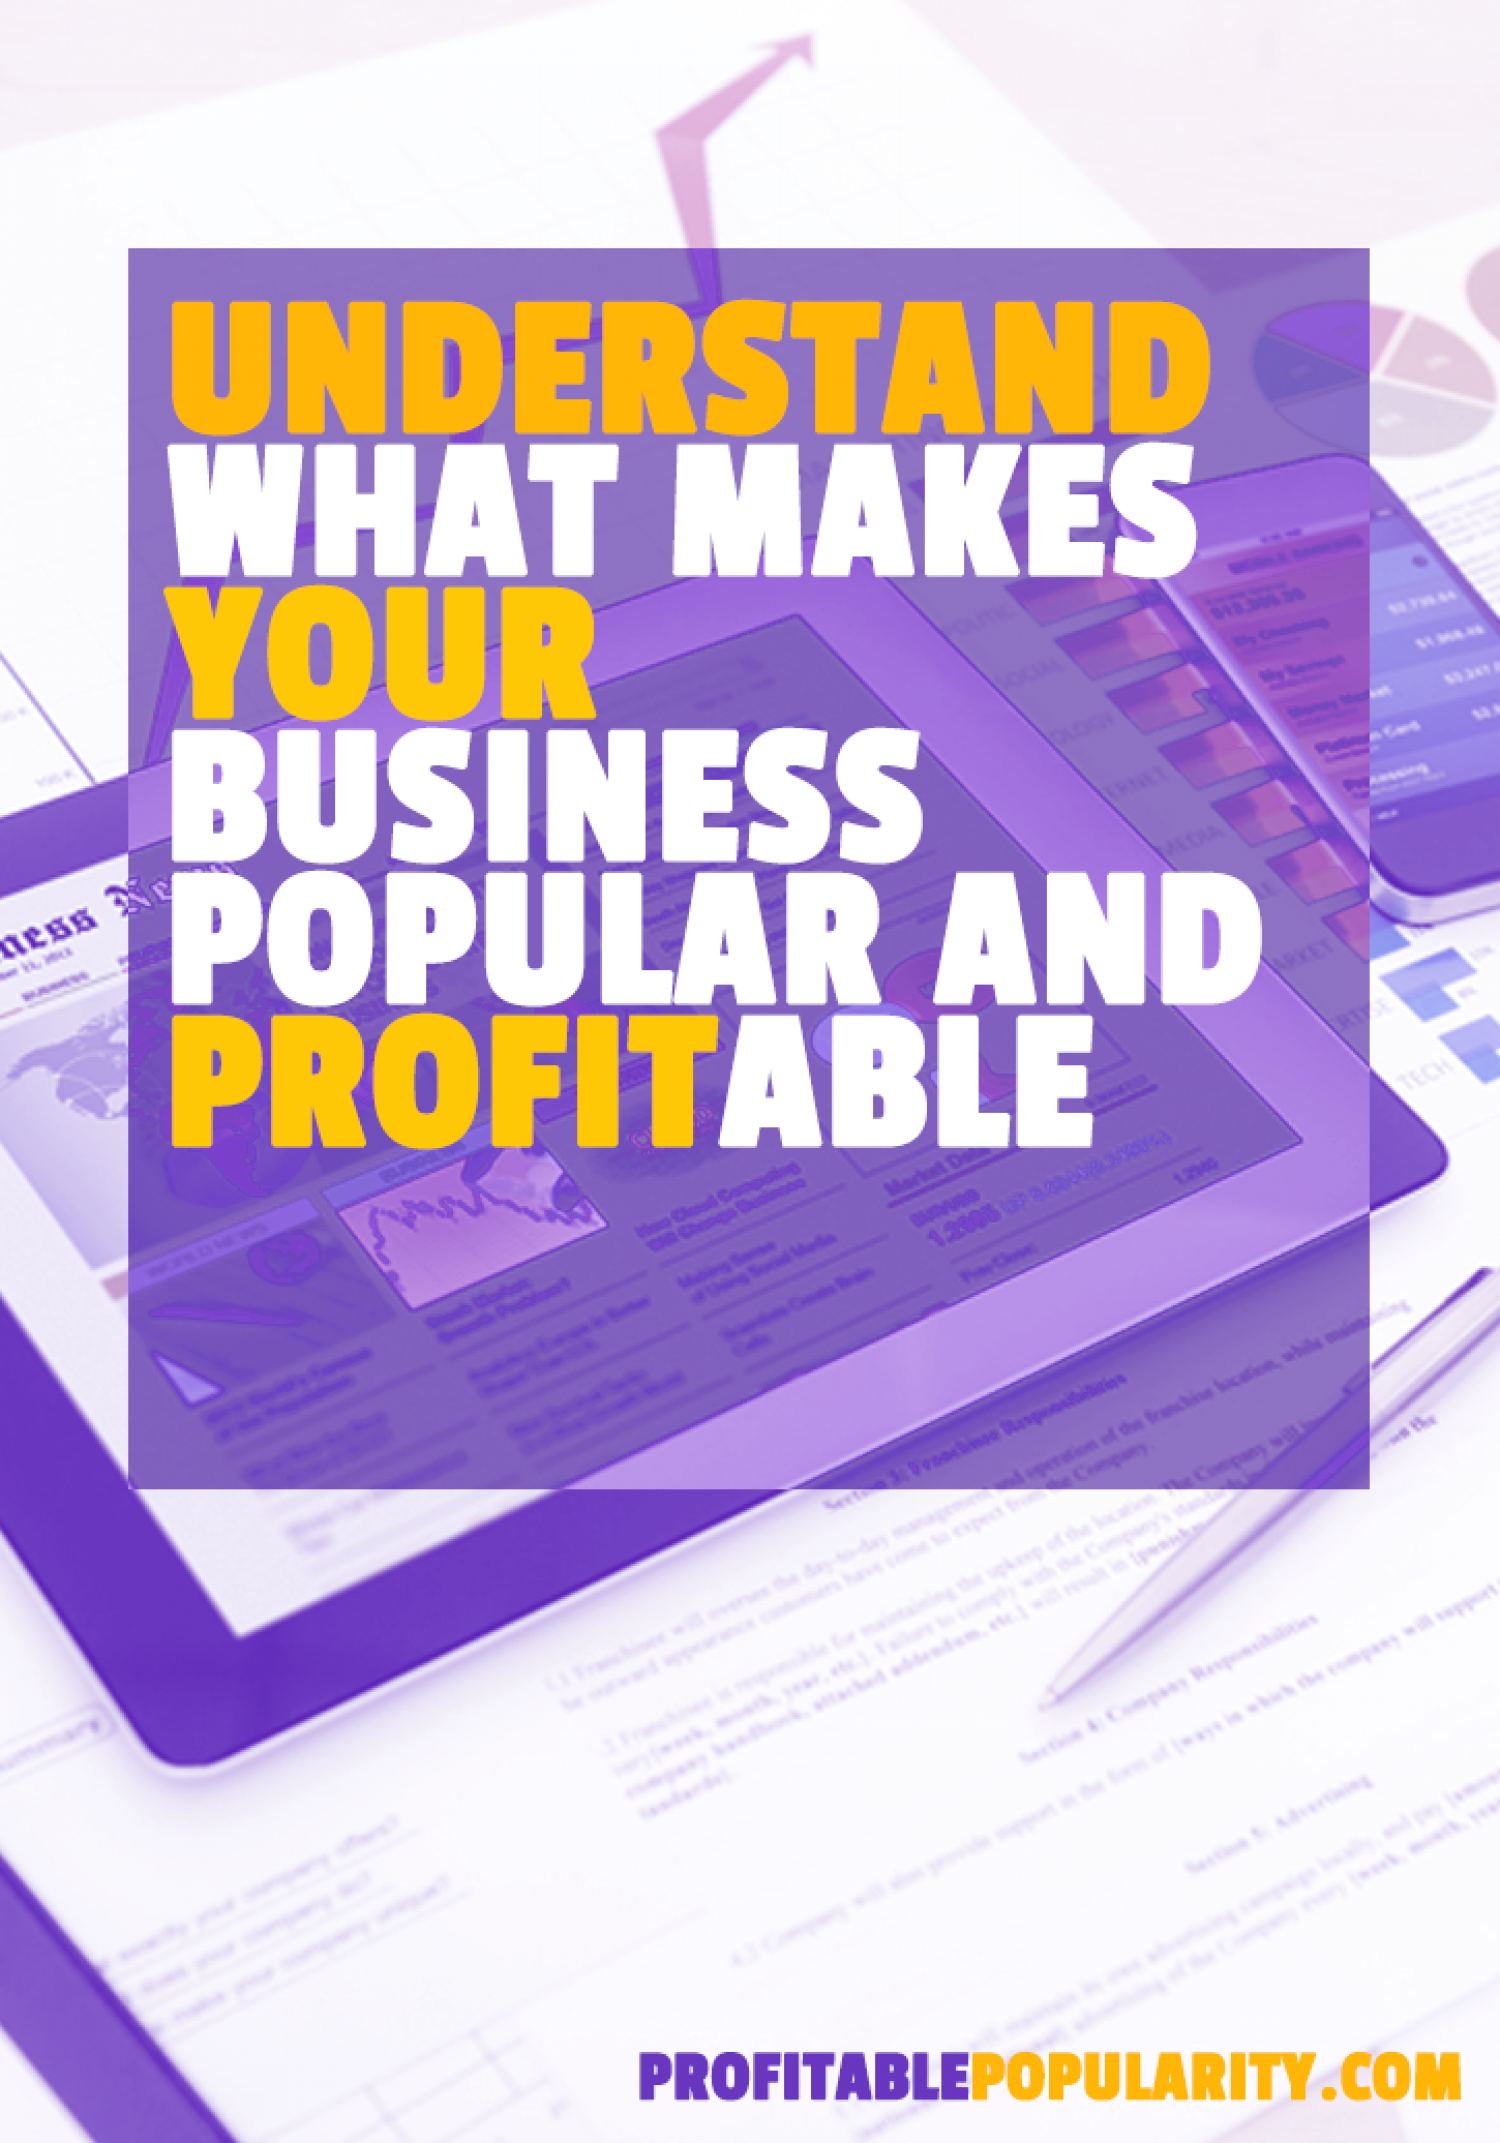 Understand What Makes Your Business Popular and Profitable Infographic